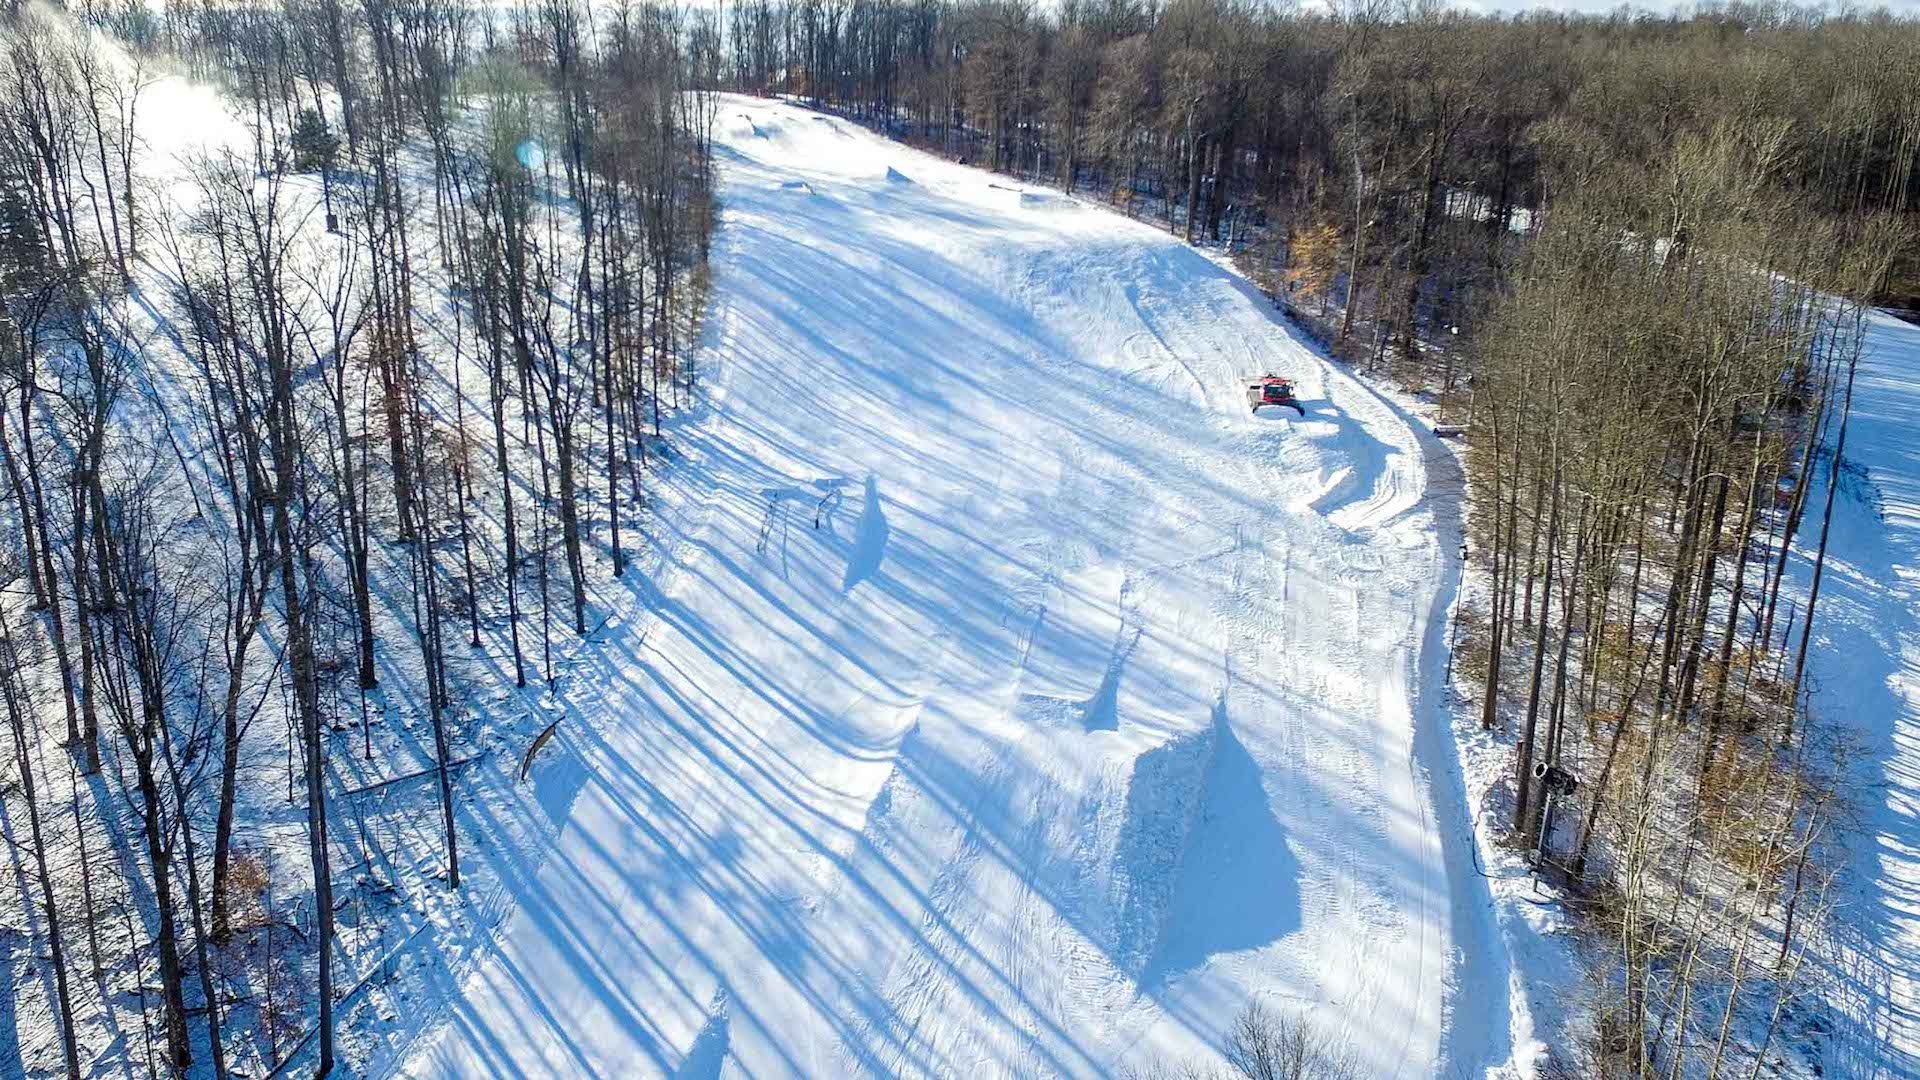 The Woods Terrain Park Build View